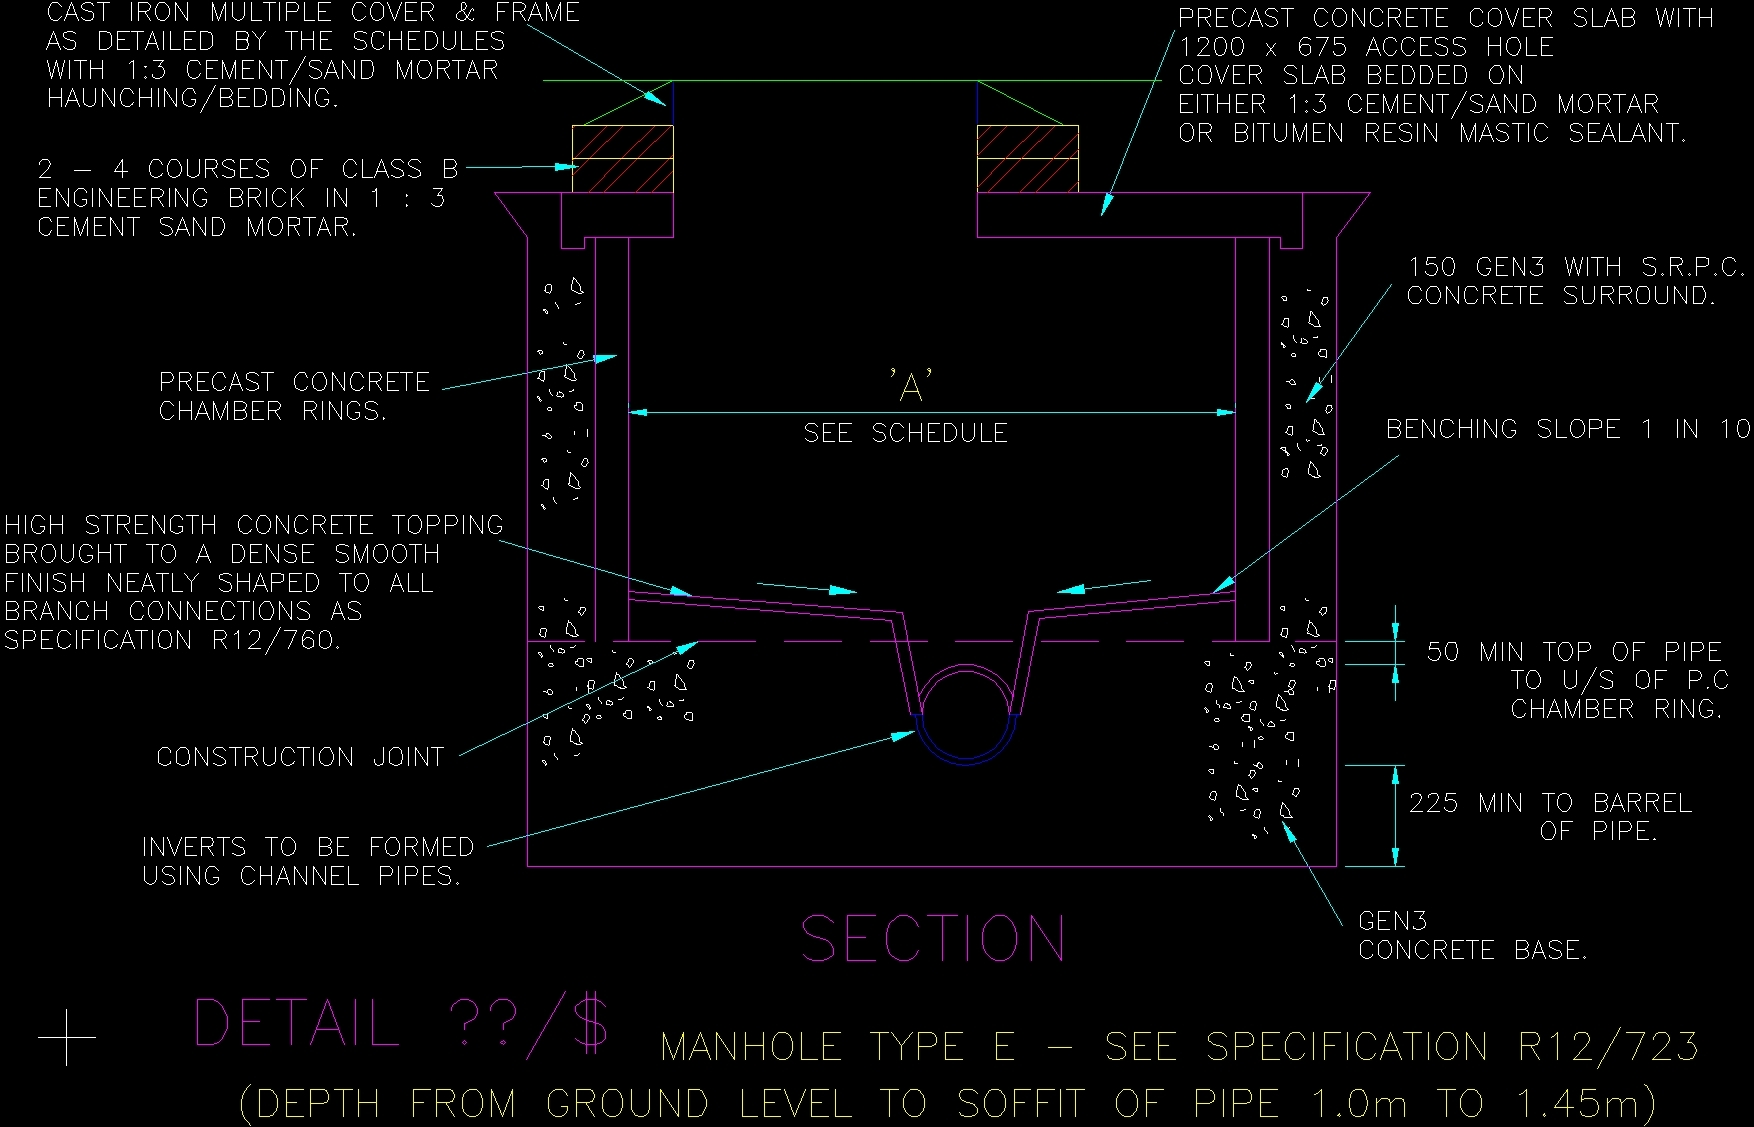 Drawing Smooth Lines In Autocad : Manhole dwg detail for autocad u designs cad